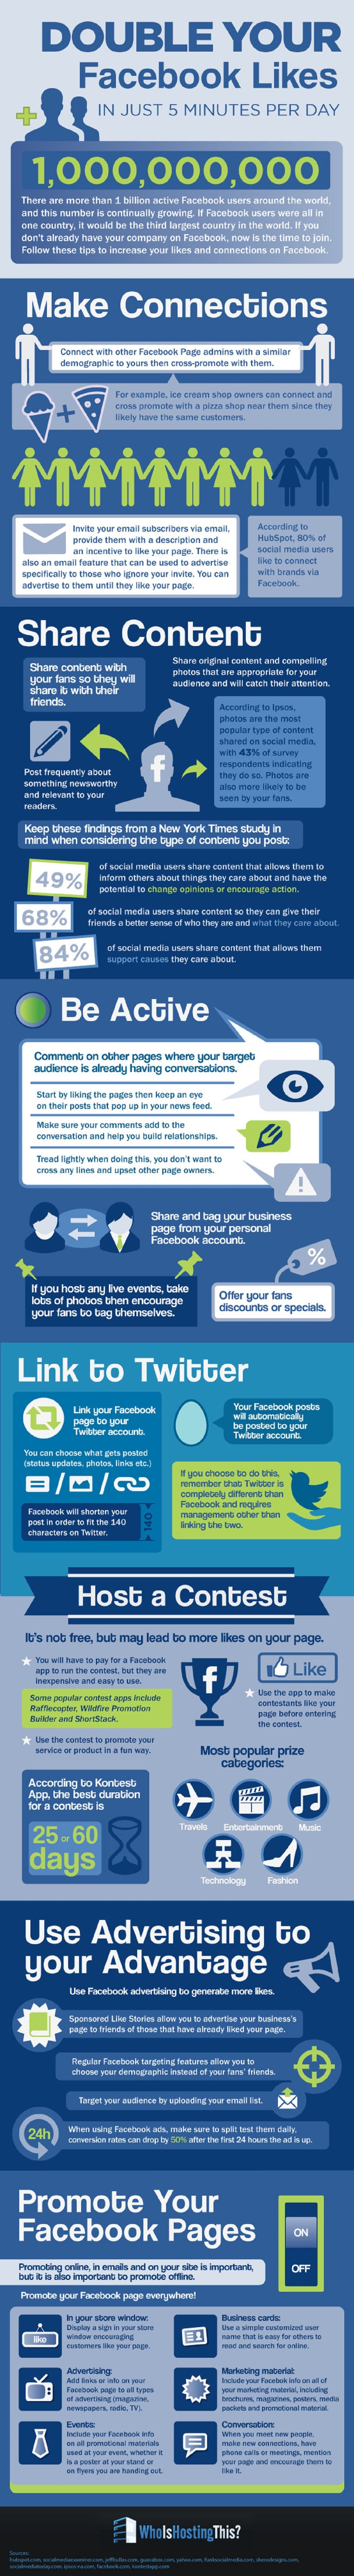 how-to-double-your-facebook-likes-infographic